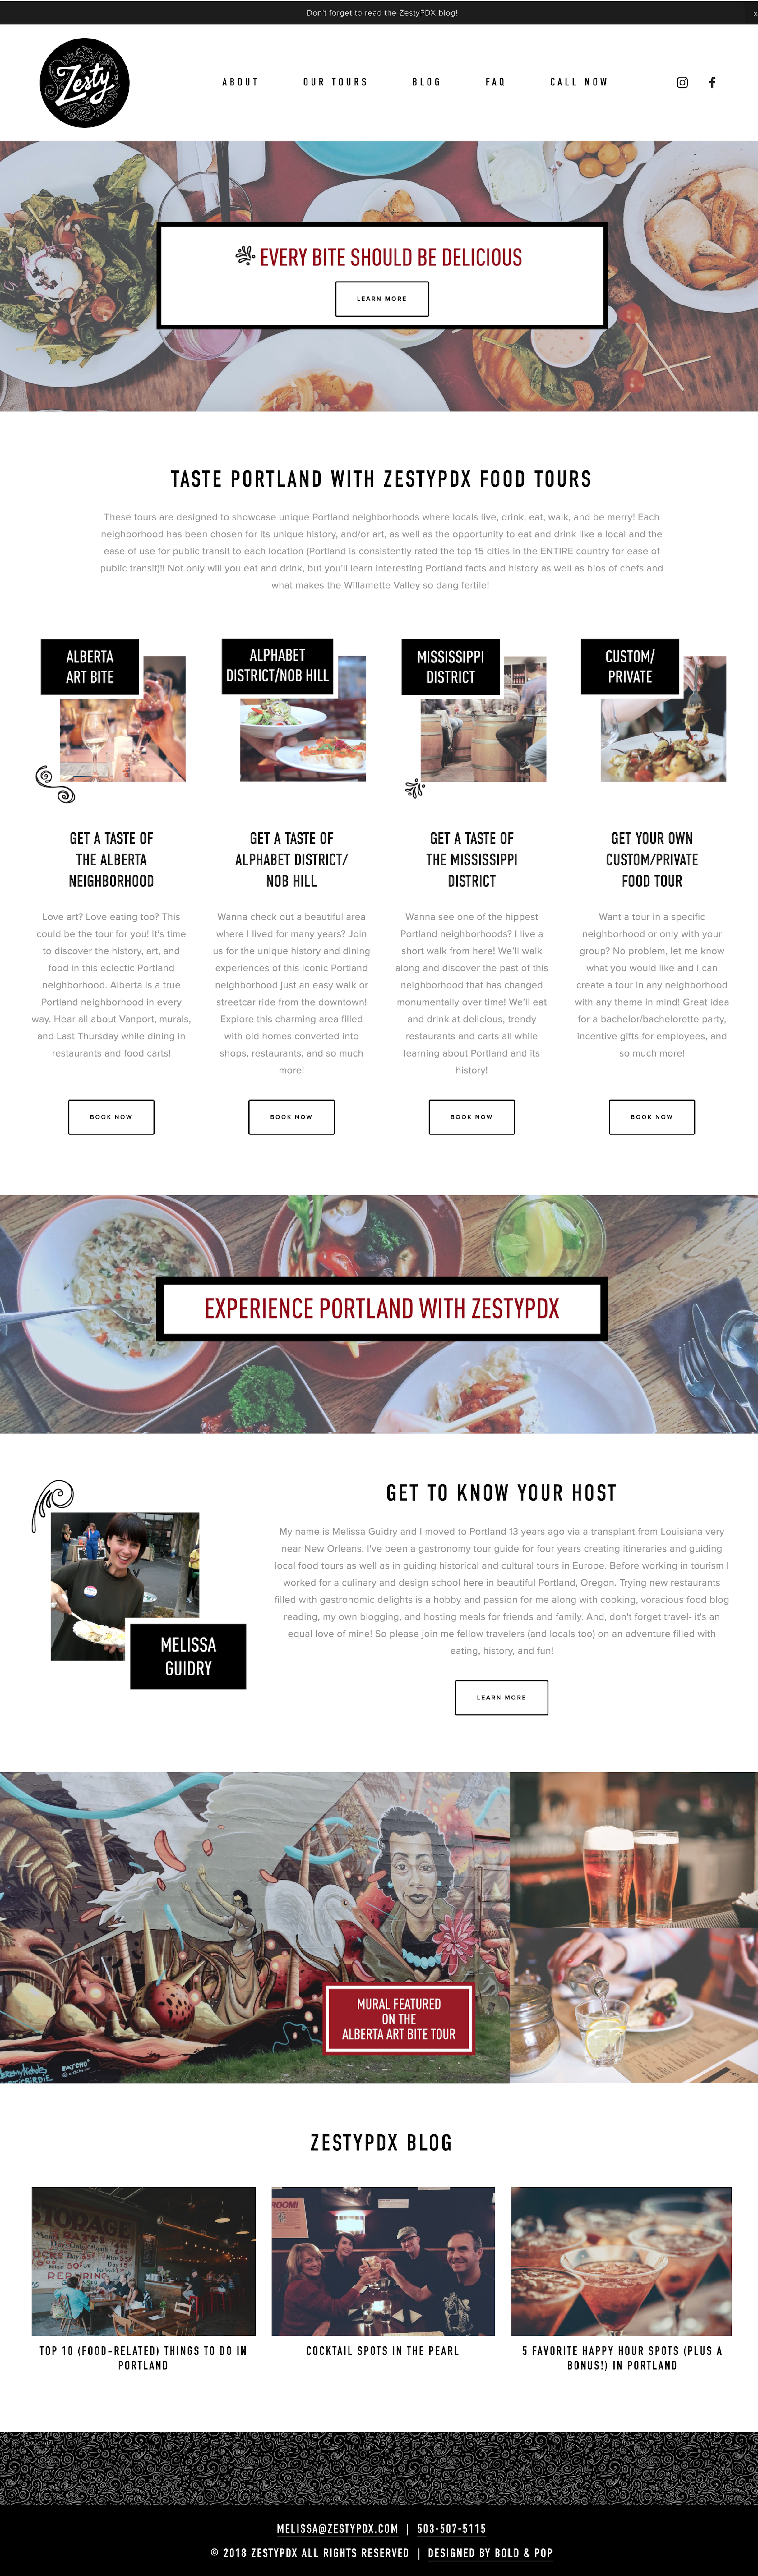 Food Tour Website & Collateral Design